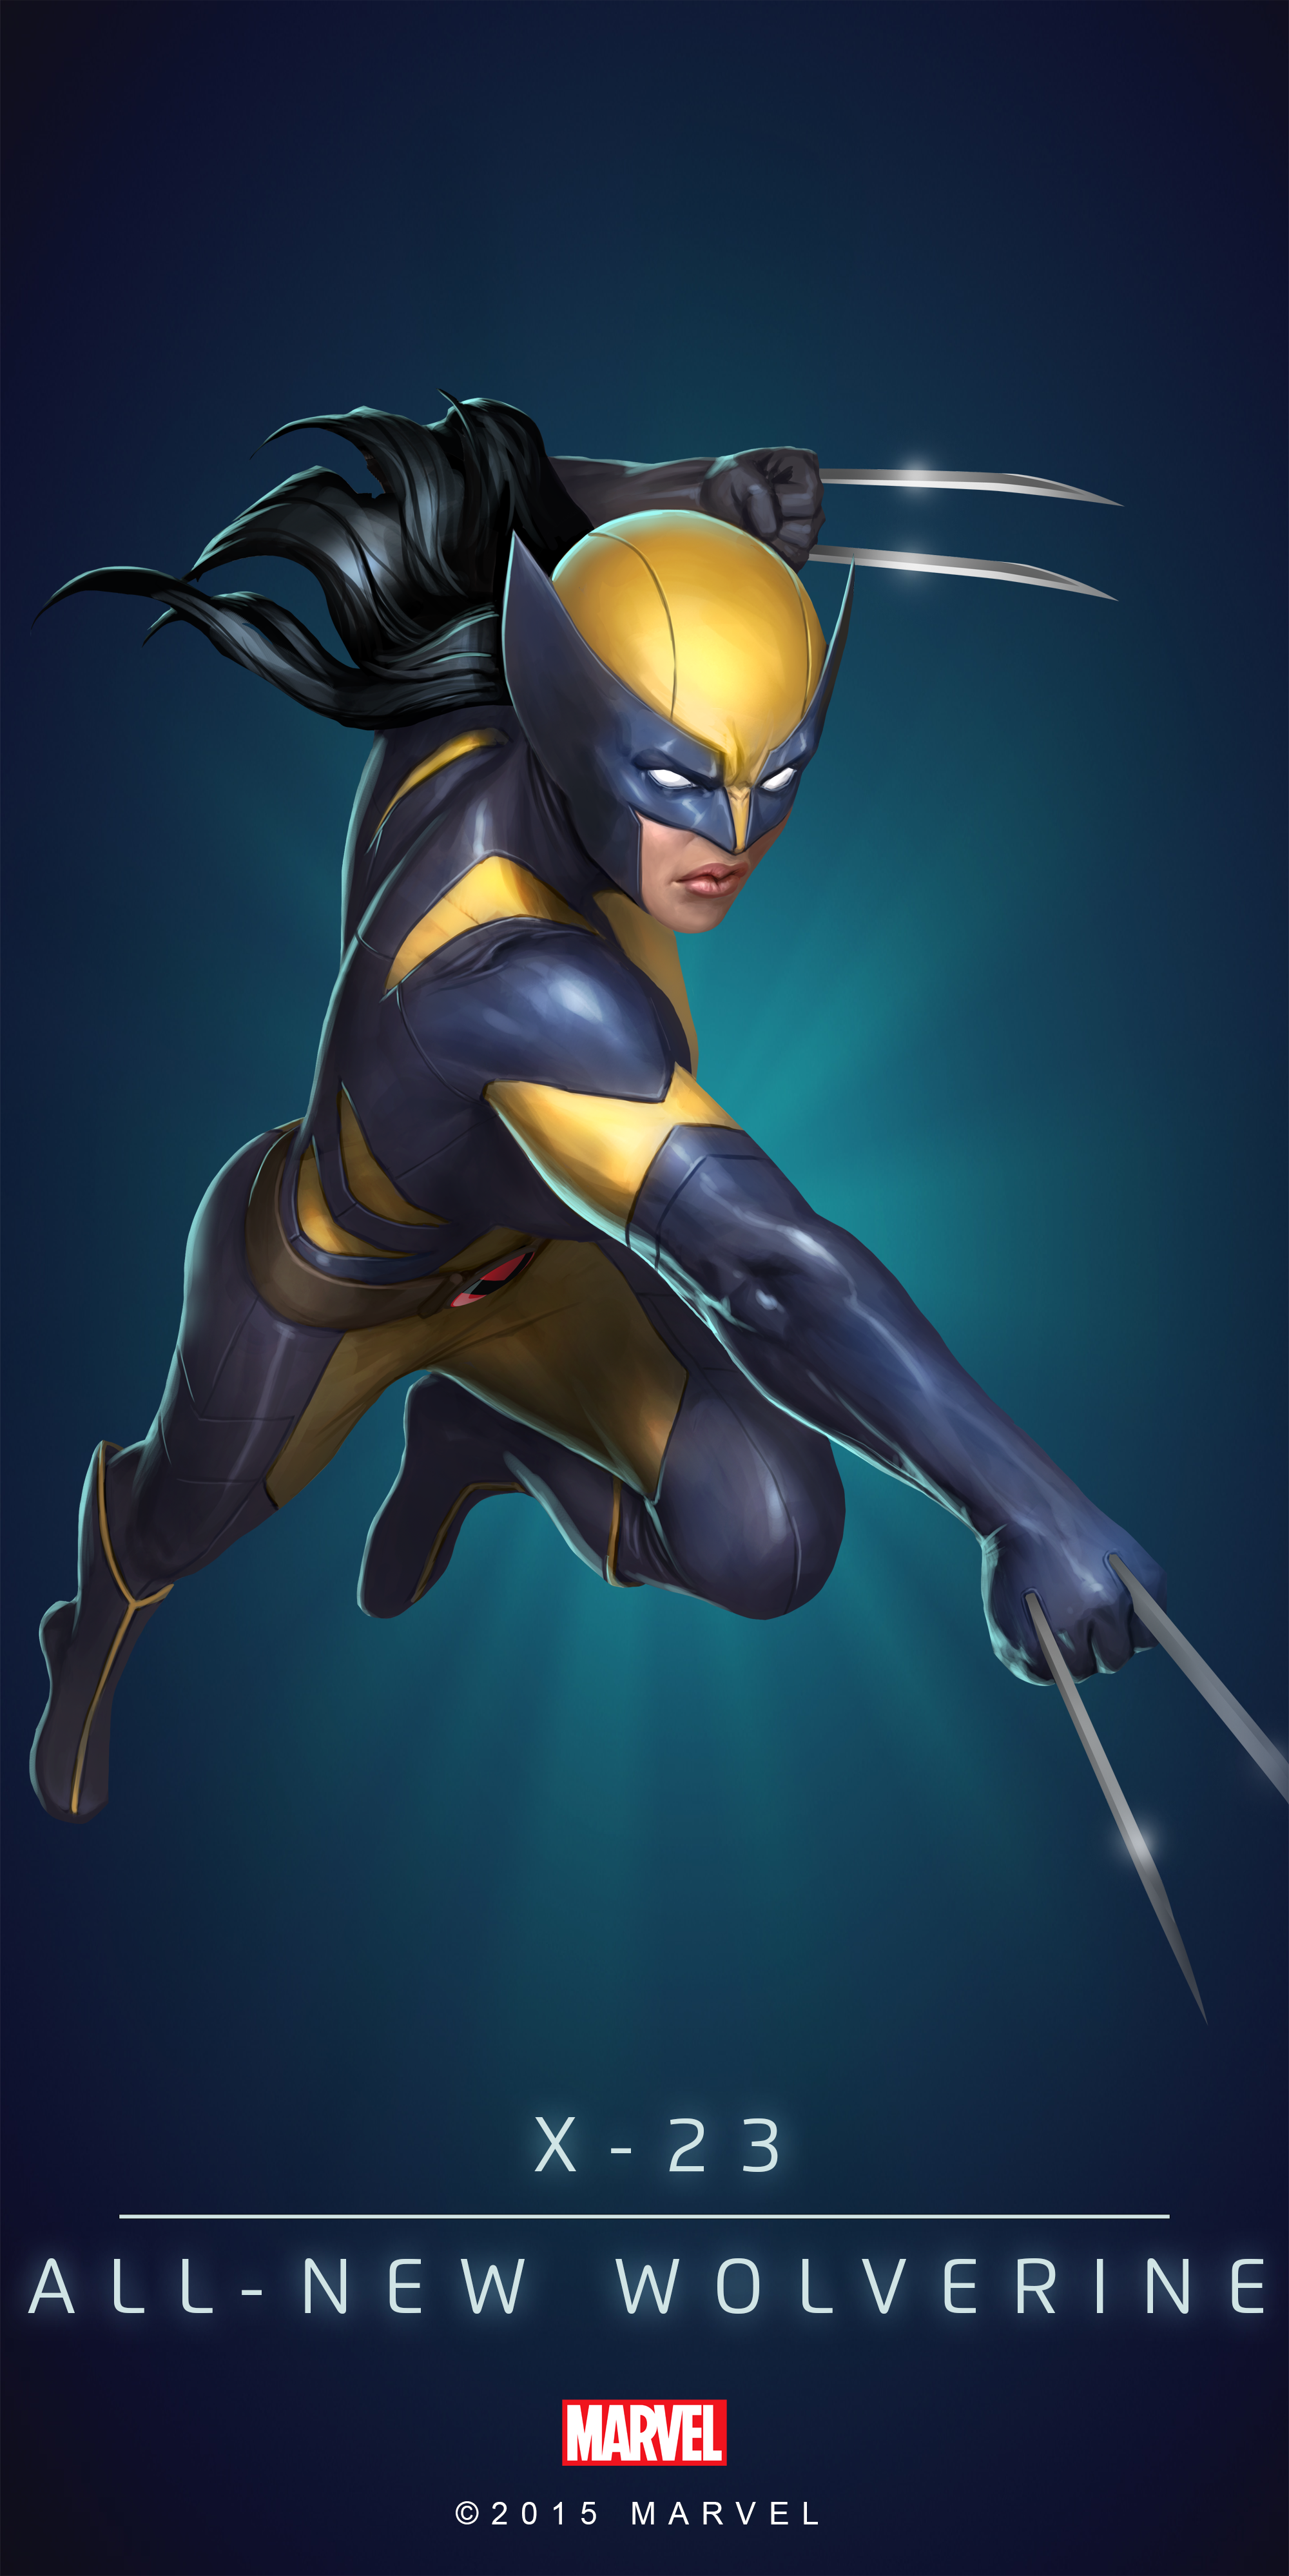 X-23 (All-New Wolverine) - Poster 03